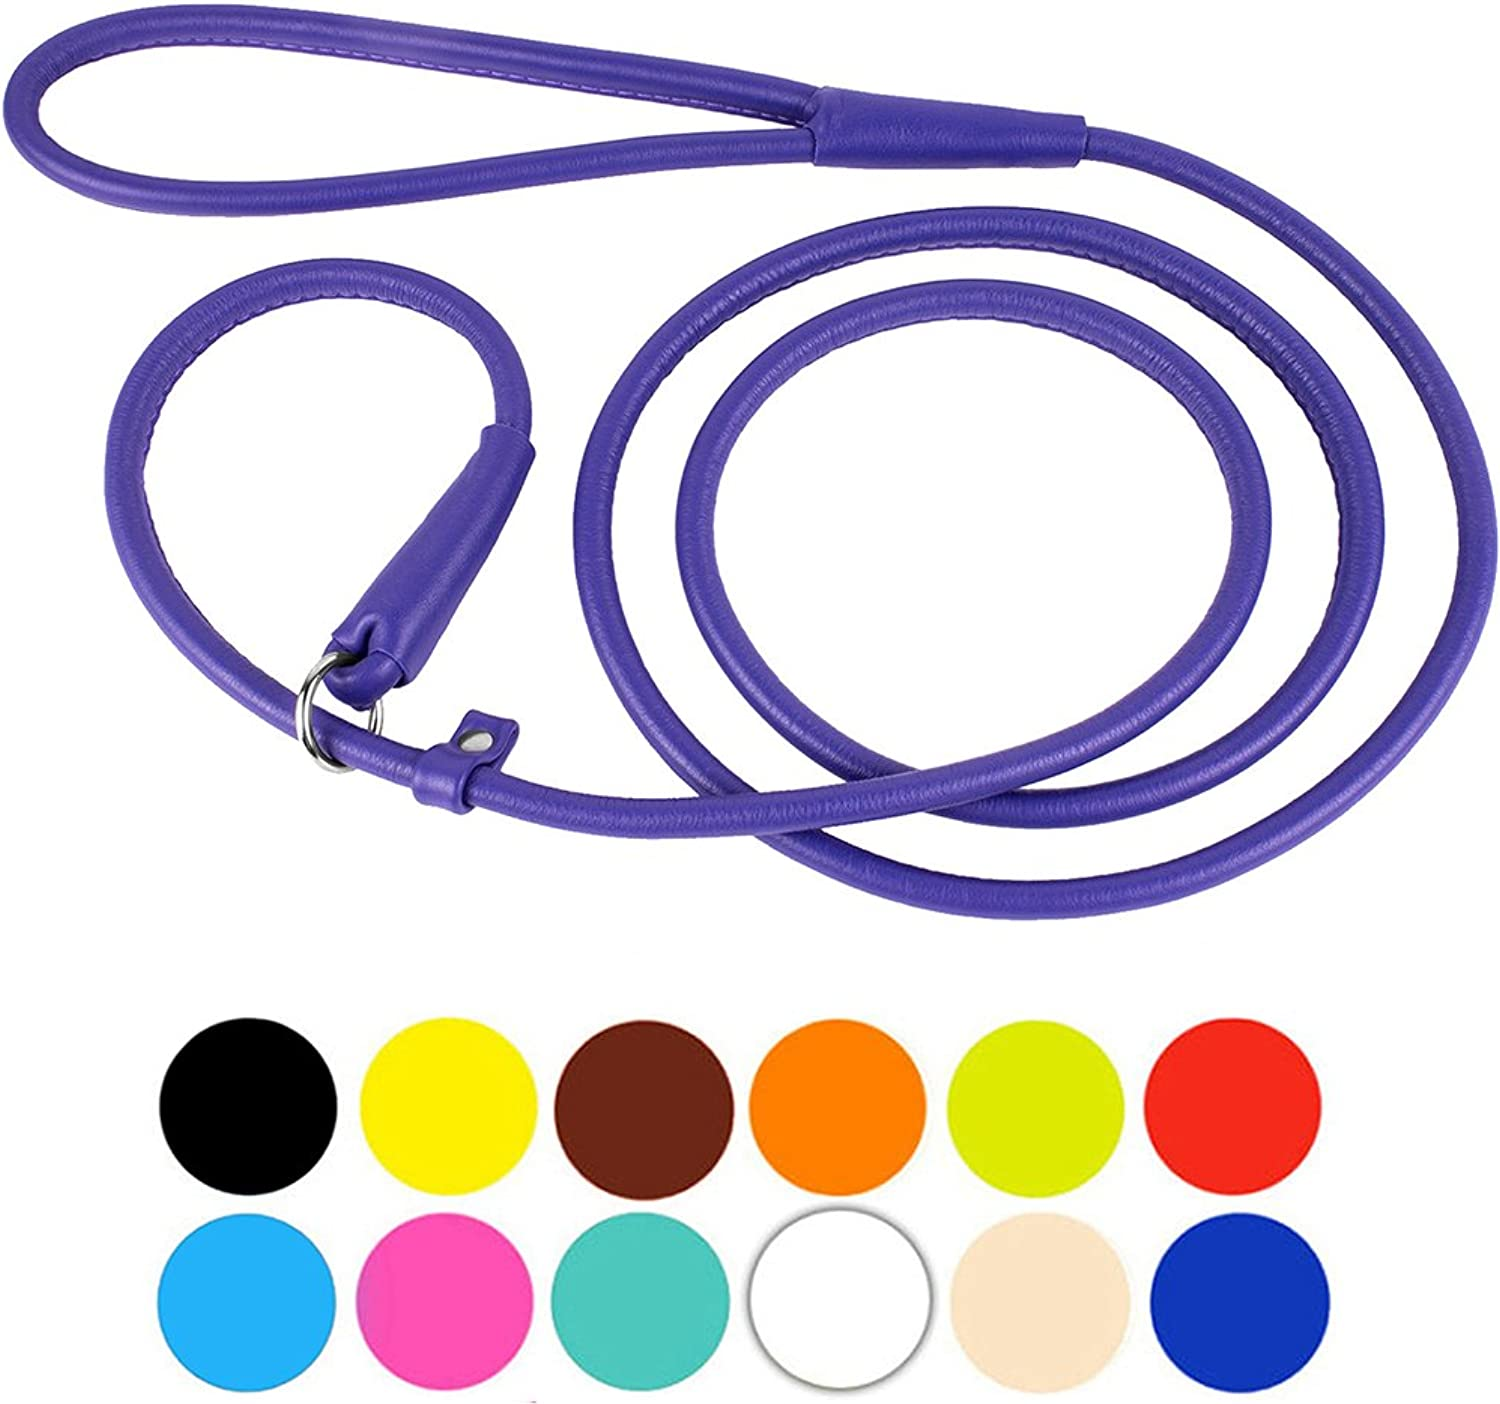 CollarDirect Rolled Leather Dog Leash 6ft or 4ft, Heavy Duty Slip Lead, Slip Leashes for Small Medium Large Dogs, Round Puppy Leash Female Male Pink Black Brown Red (S 6ft, Purple)